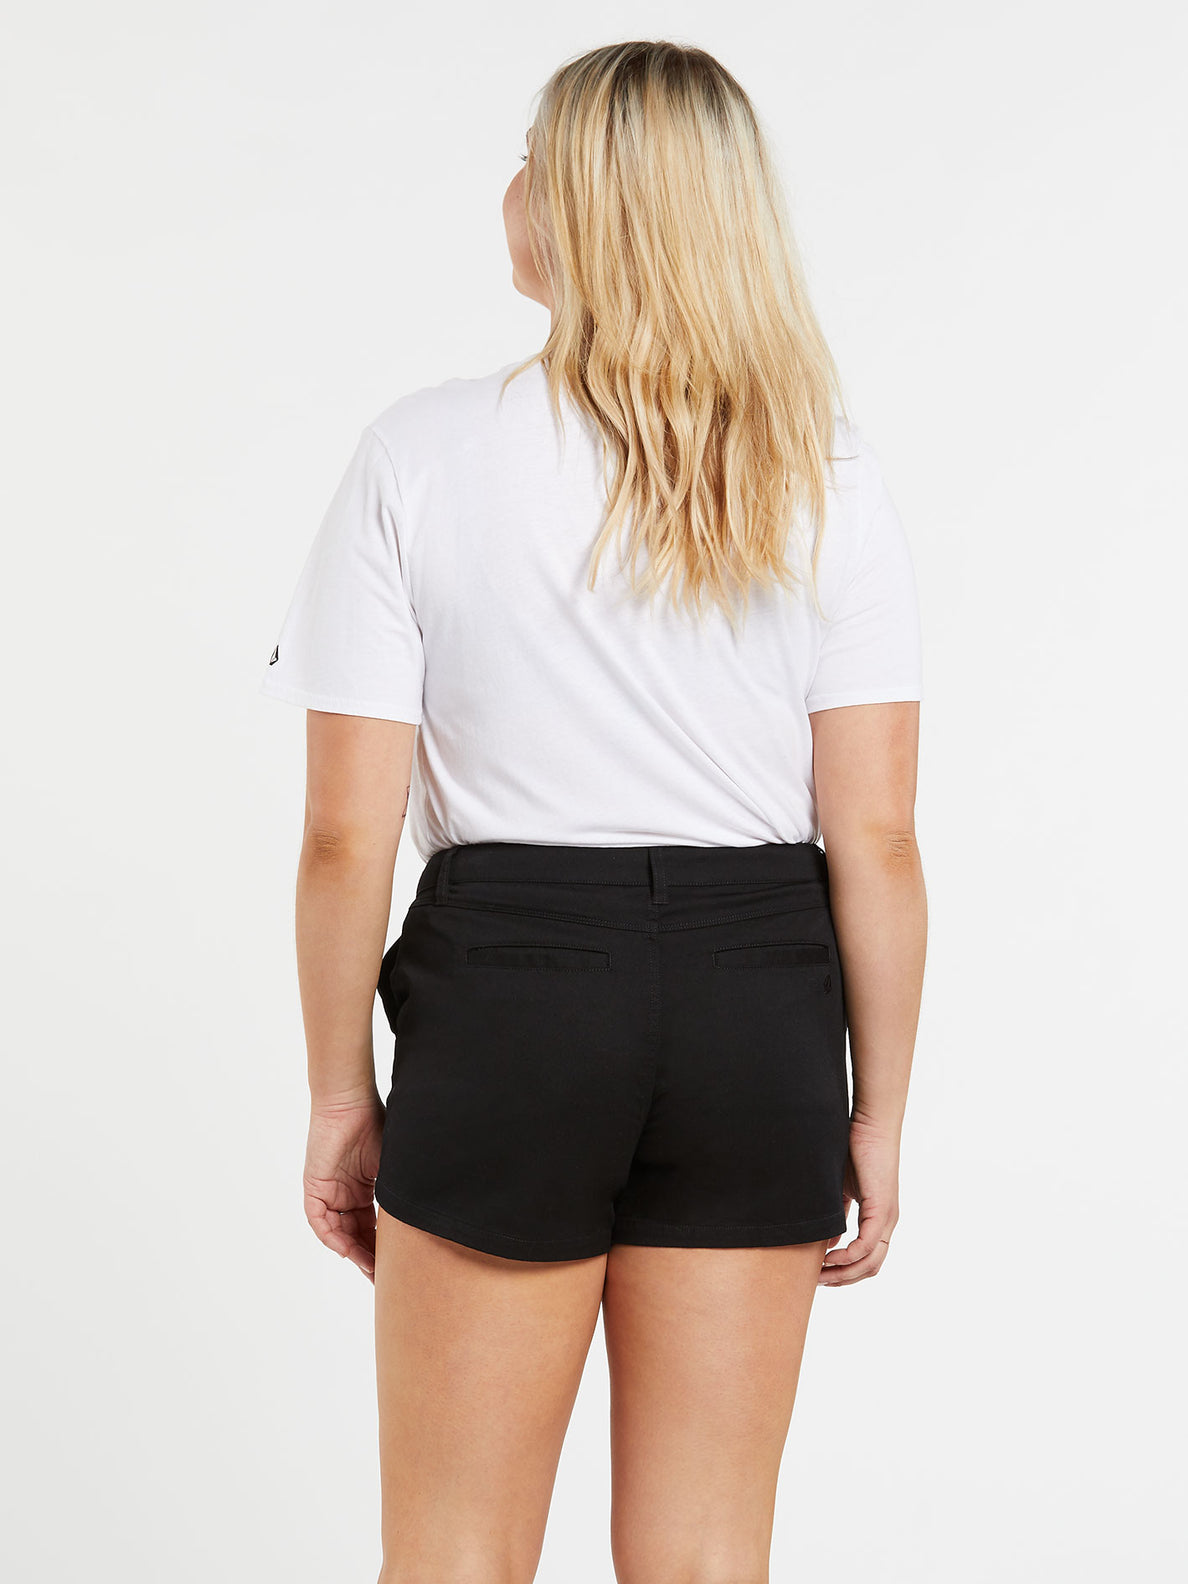 Frochickie Shorts - Black (B0911800_BLK) [11]